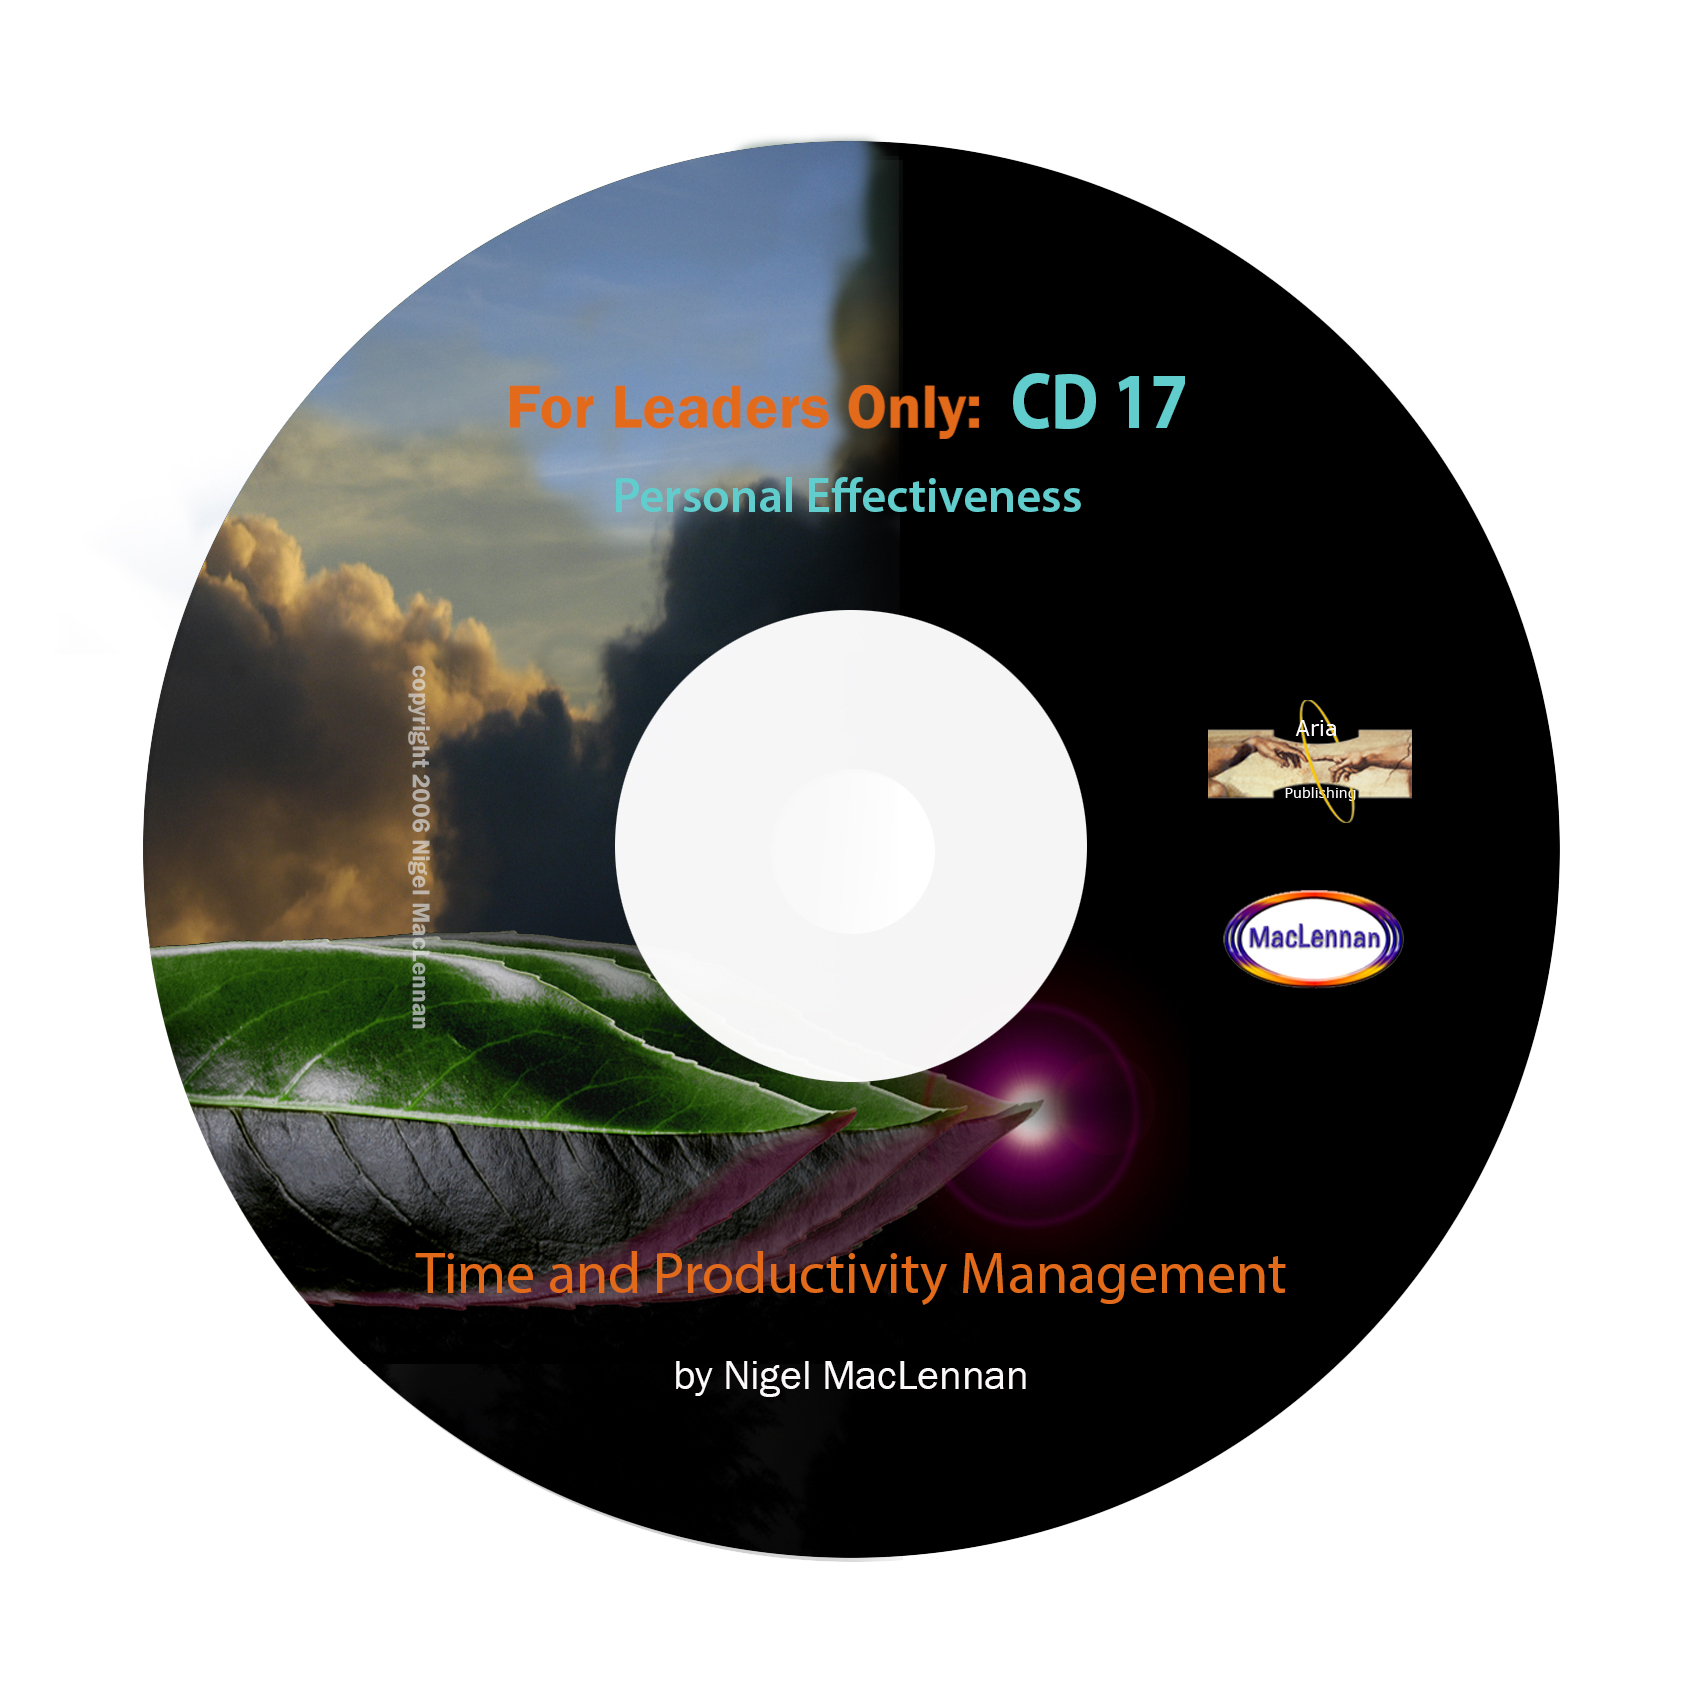 For Leaders Only - Time and Productivity Management CD